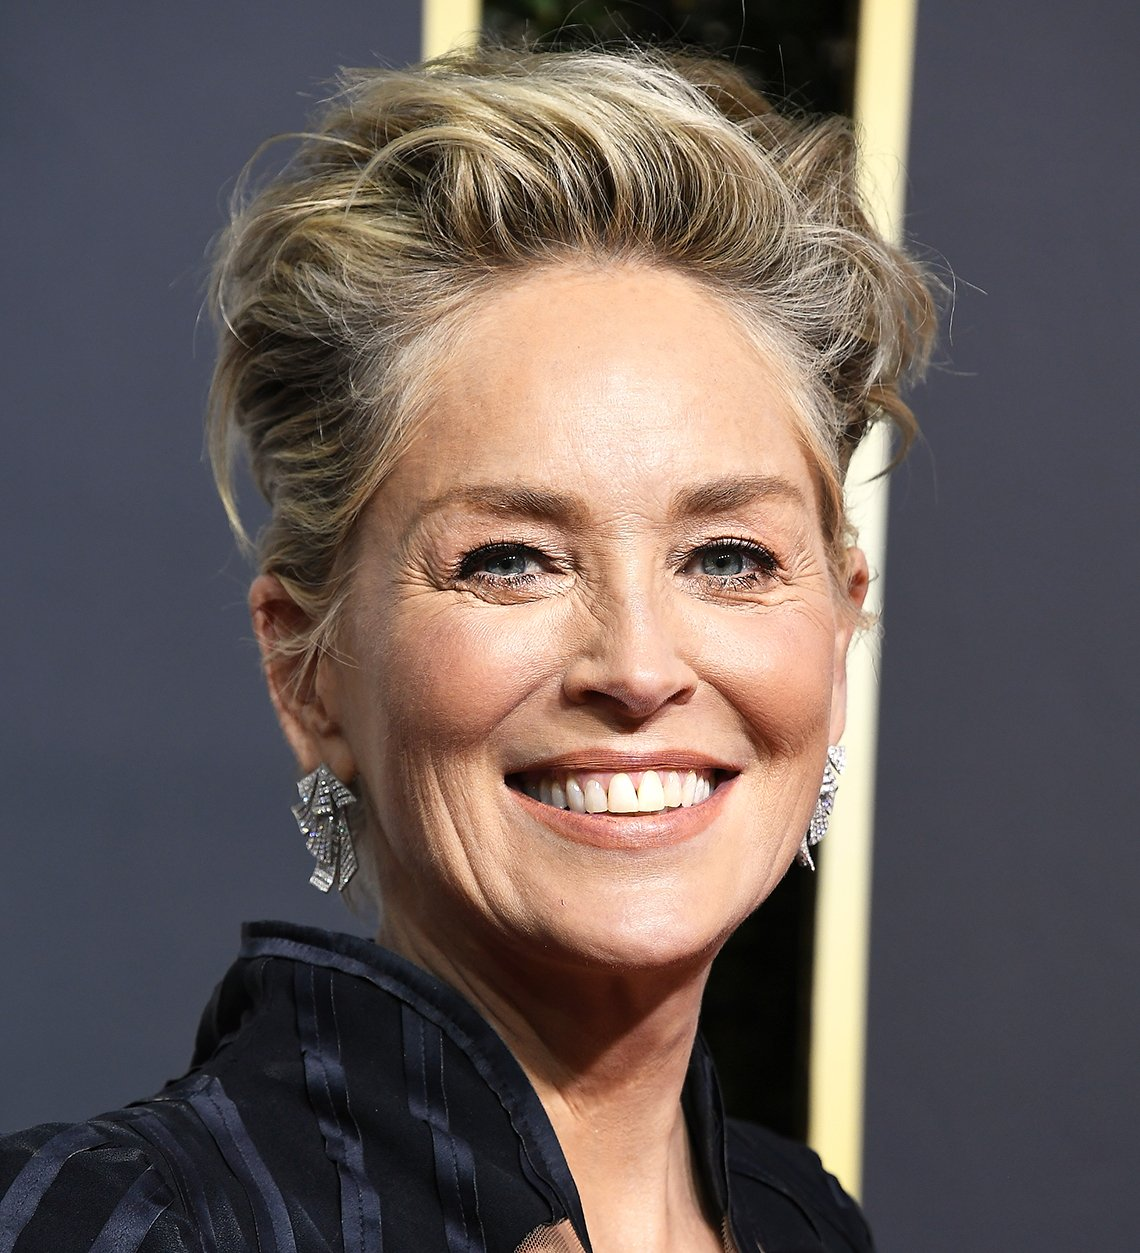 actress sharon stone smiling on the red carpet